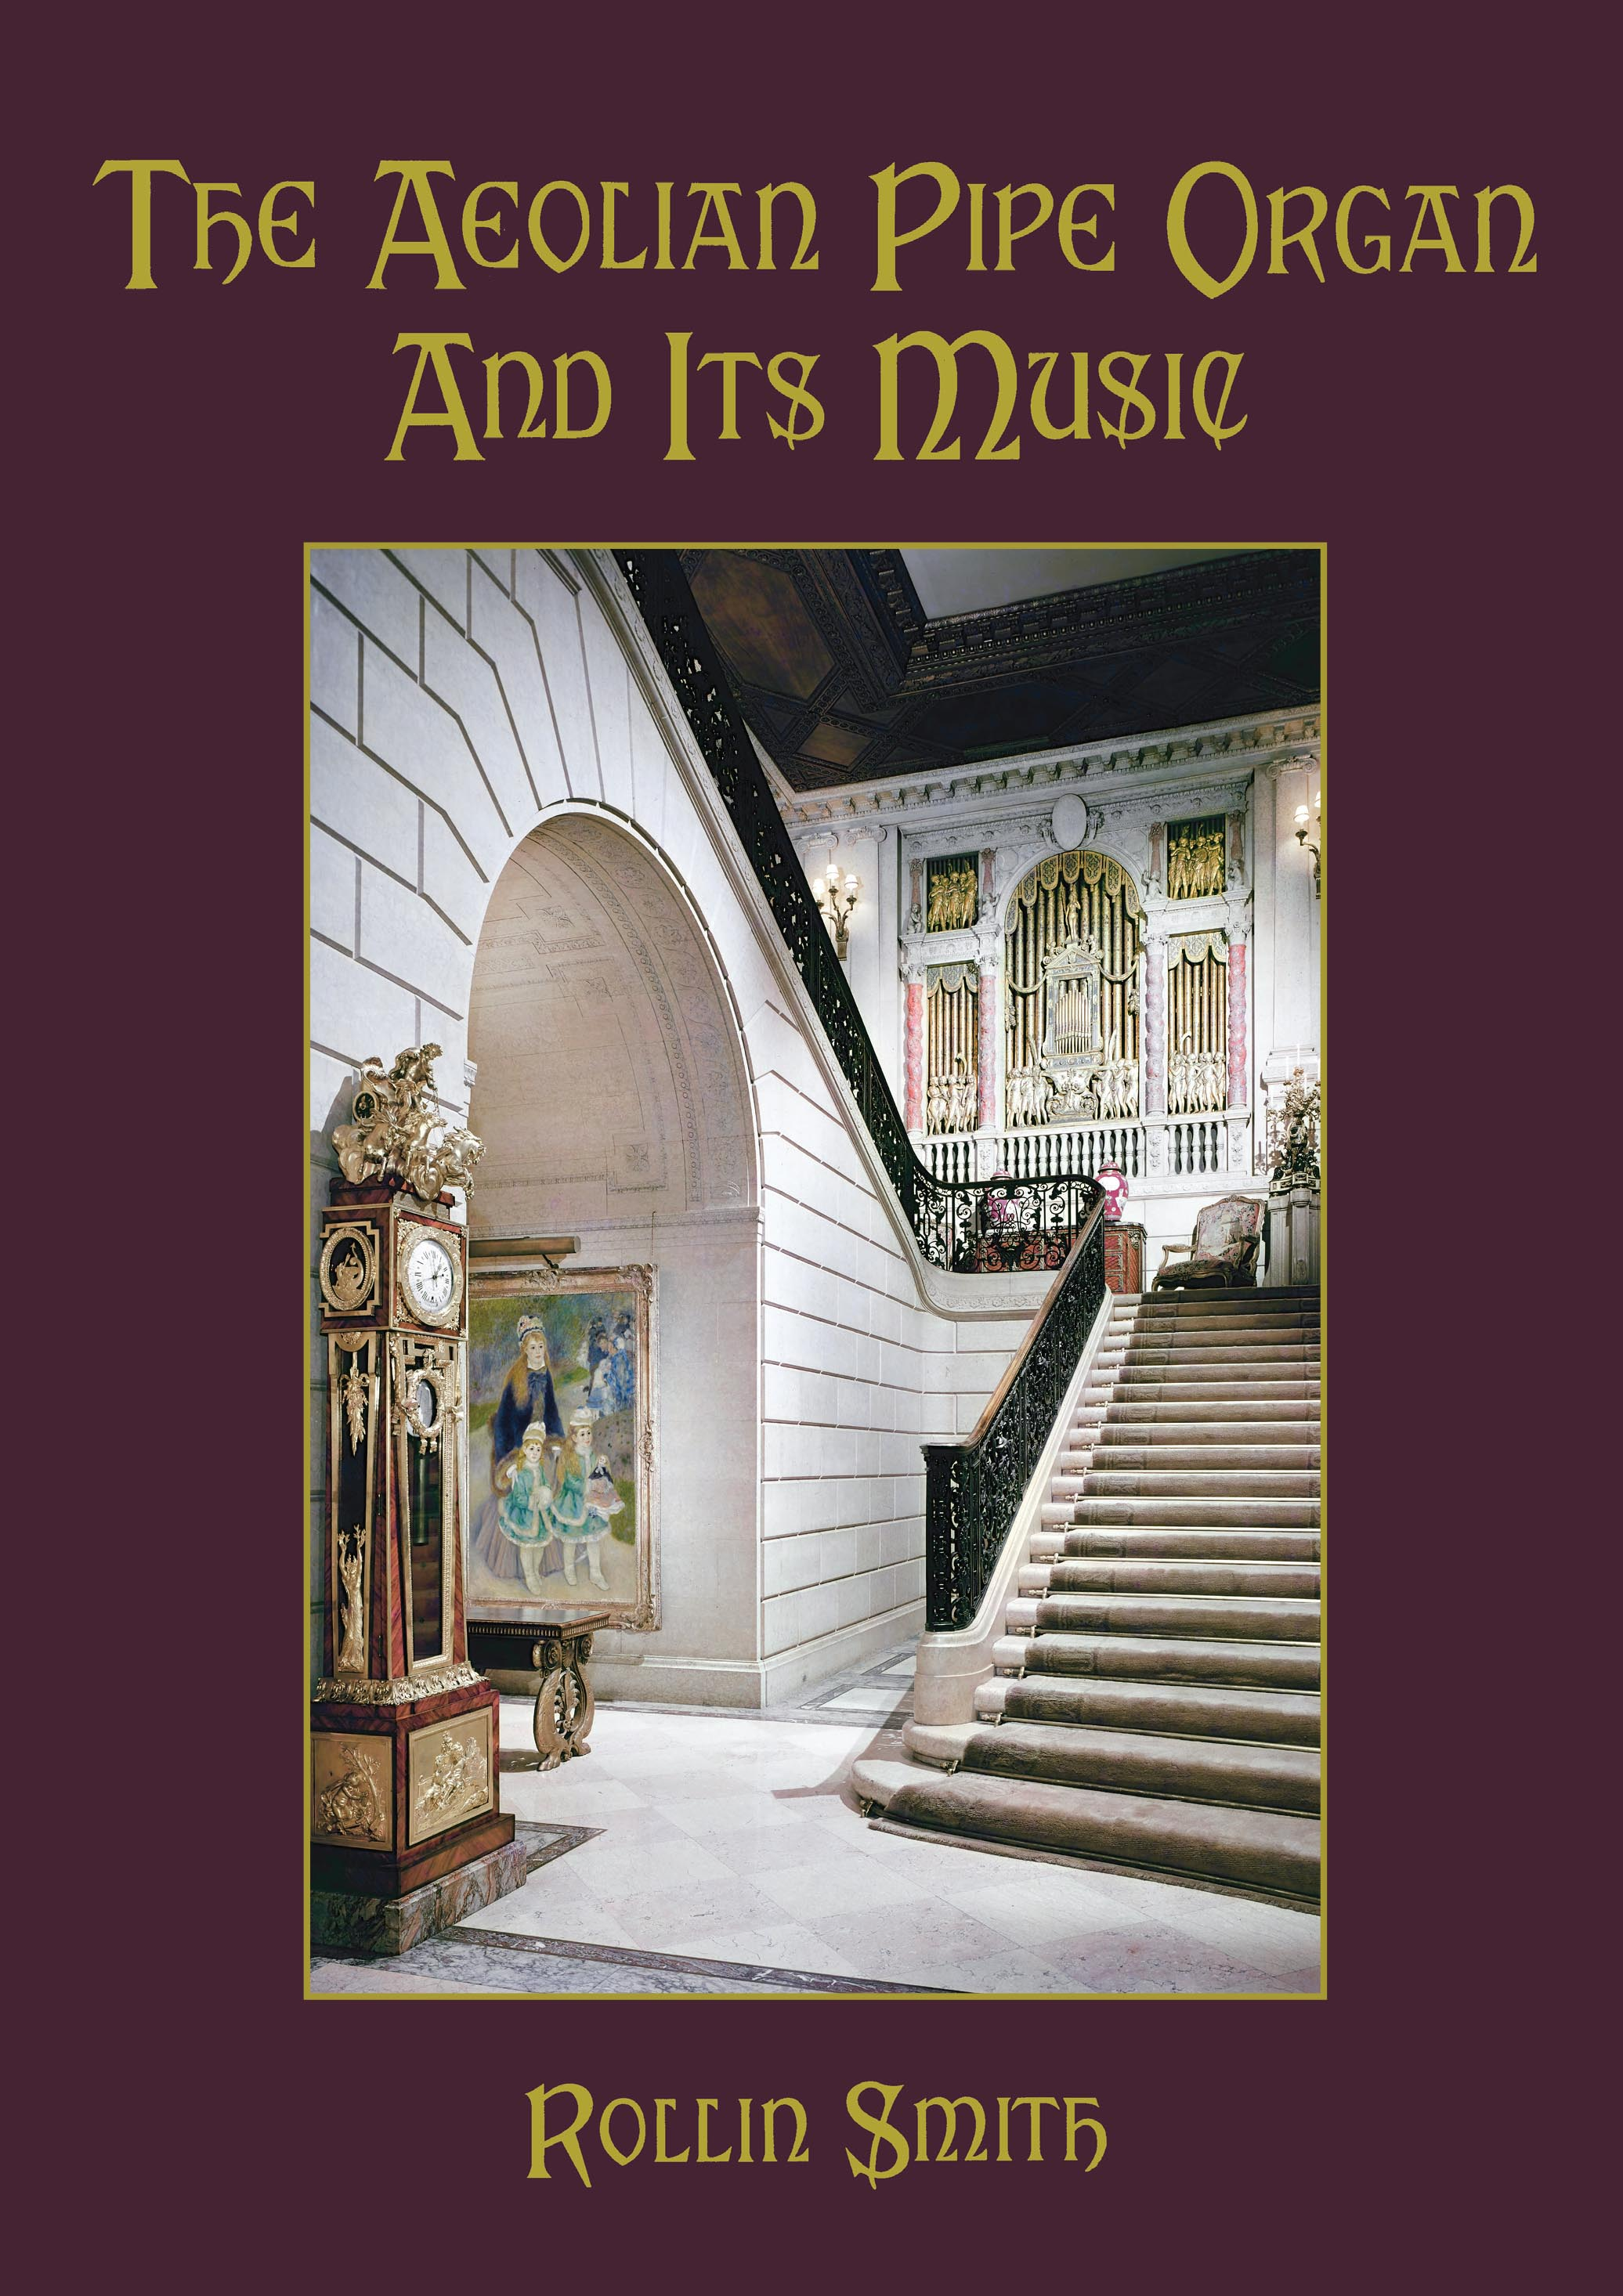 The Aeolian Pipe Organ And Its Music